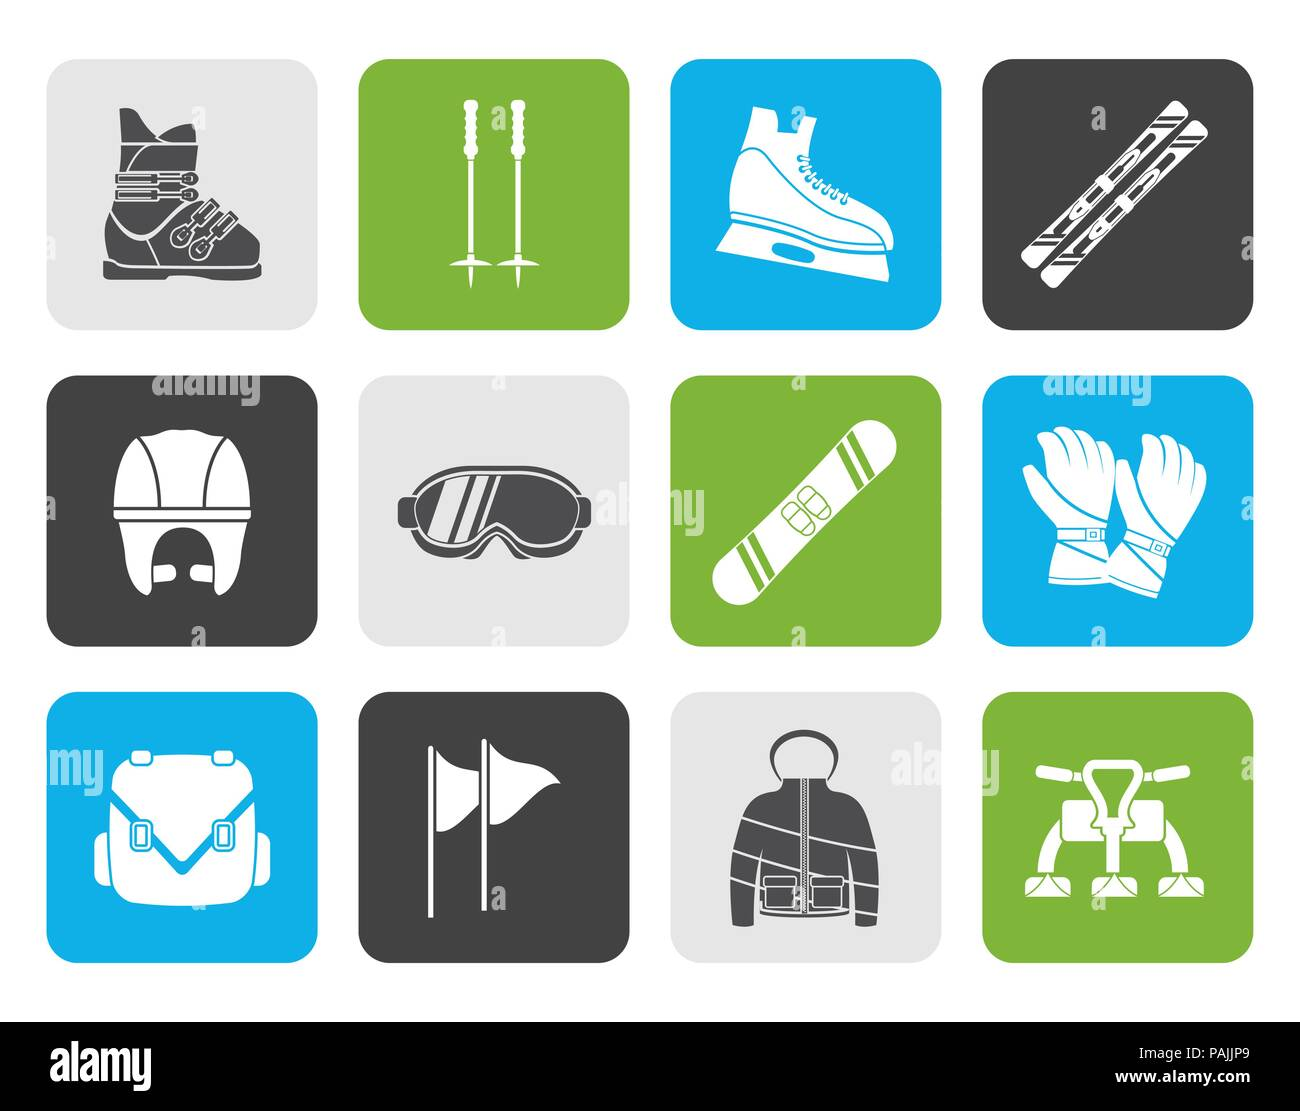 Flat ski and snowboard equipment icons - vector icon set - Stock Image